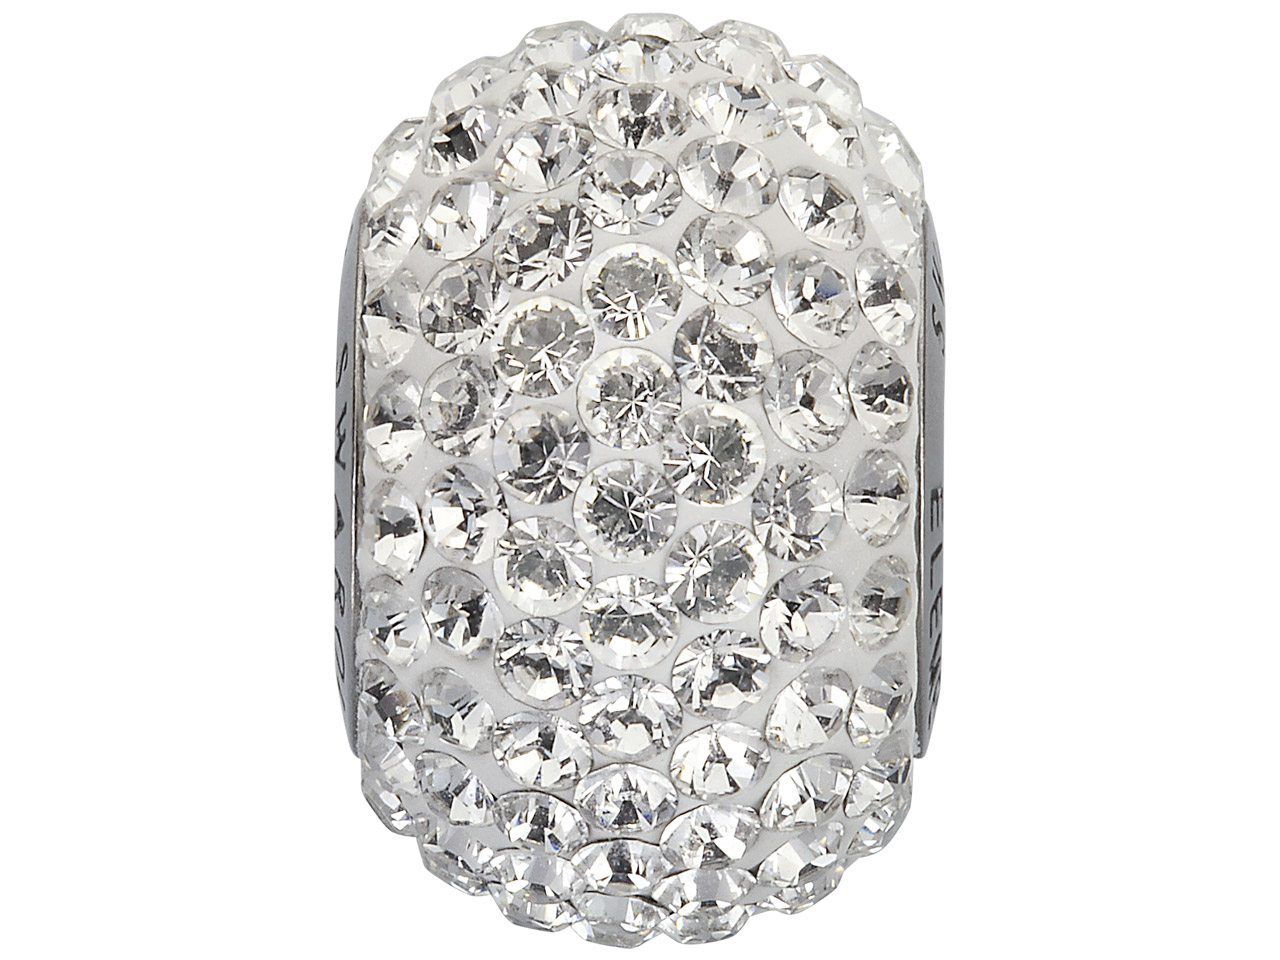 Swarovski Crystal Becharmed Round  Pave Charm Bead, 80 101, 14mm,     Crystal